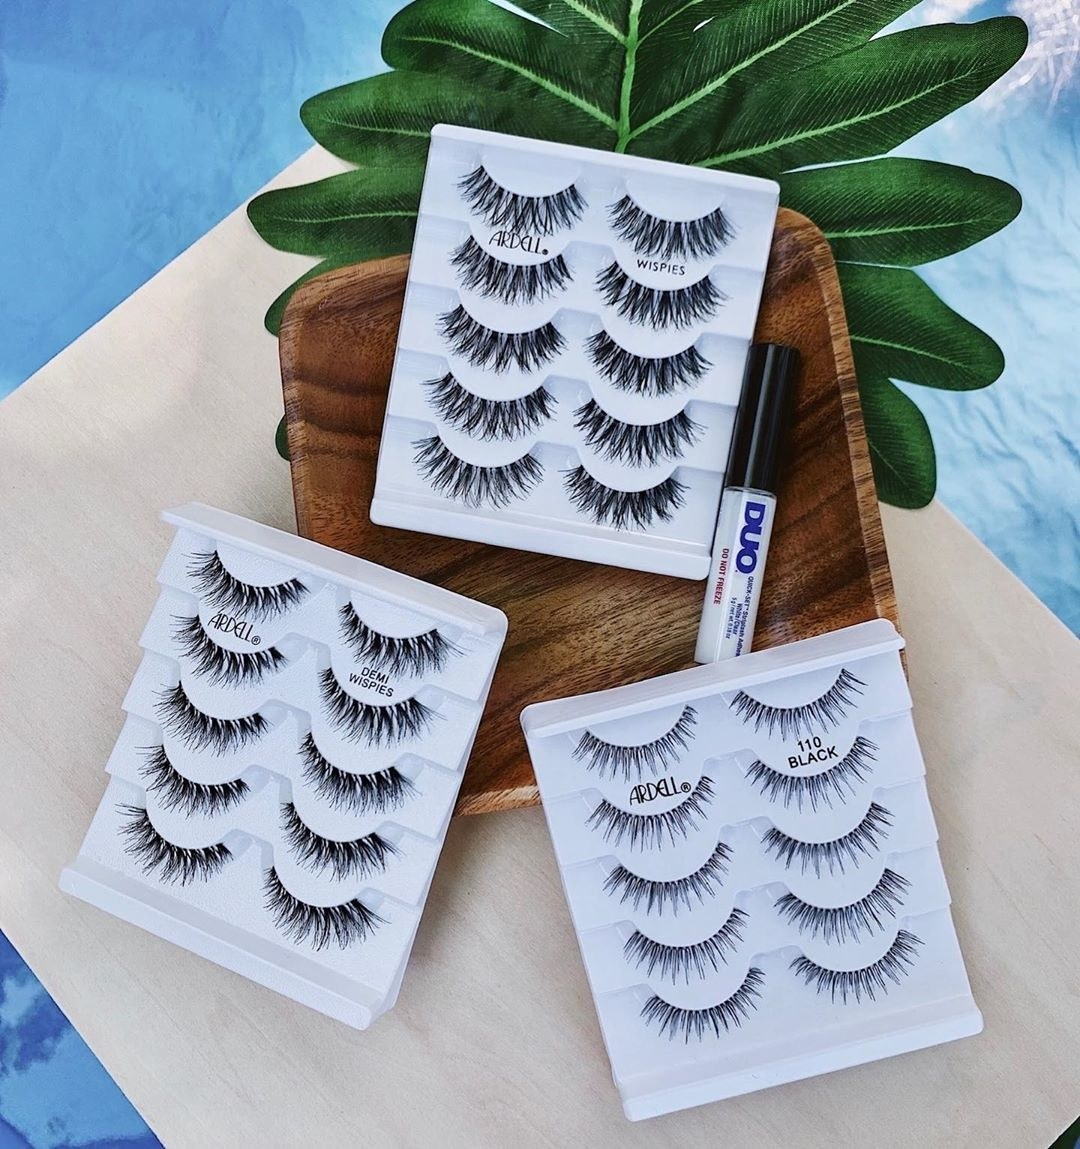 Fake eyelashes on a tabletop